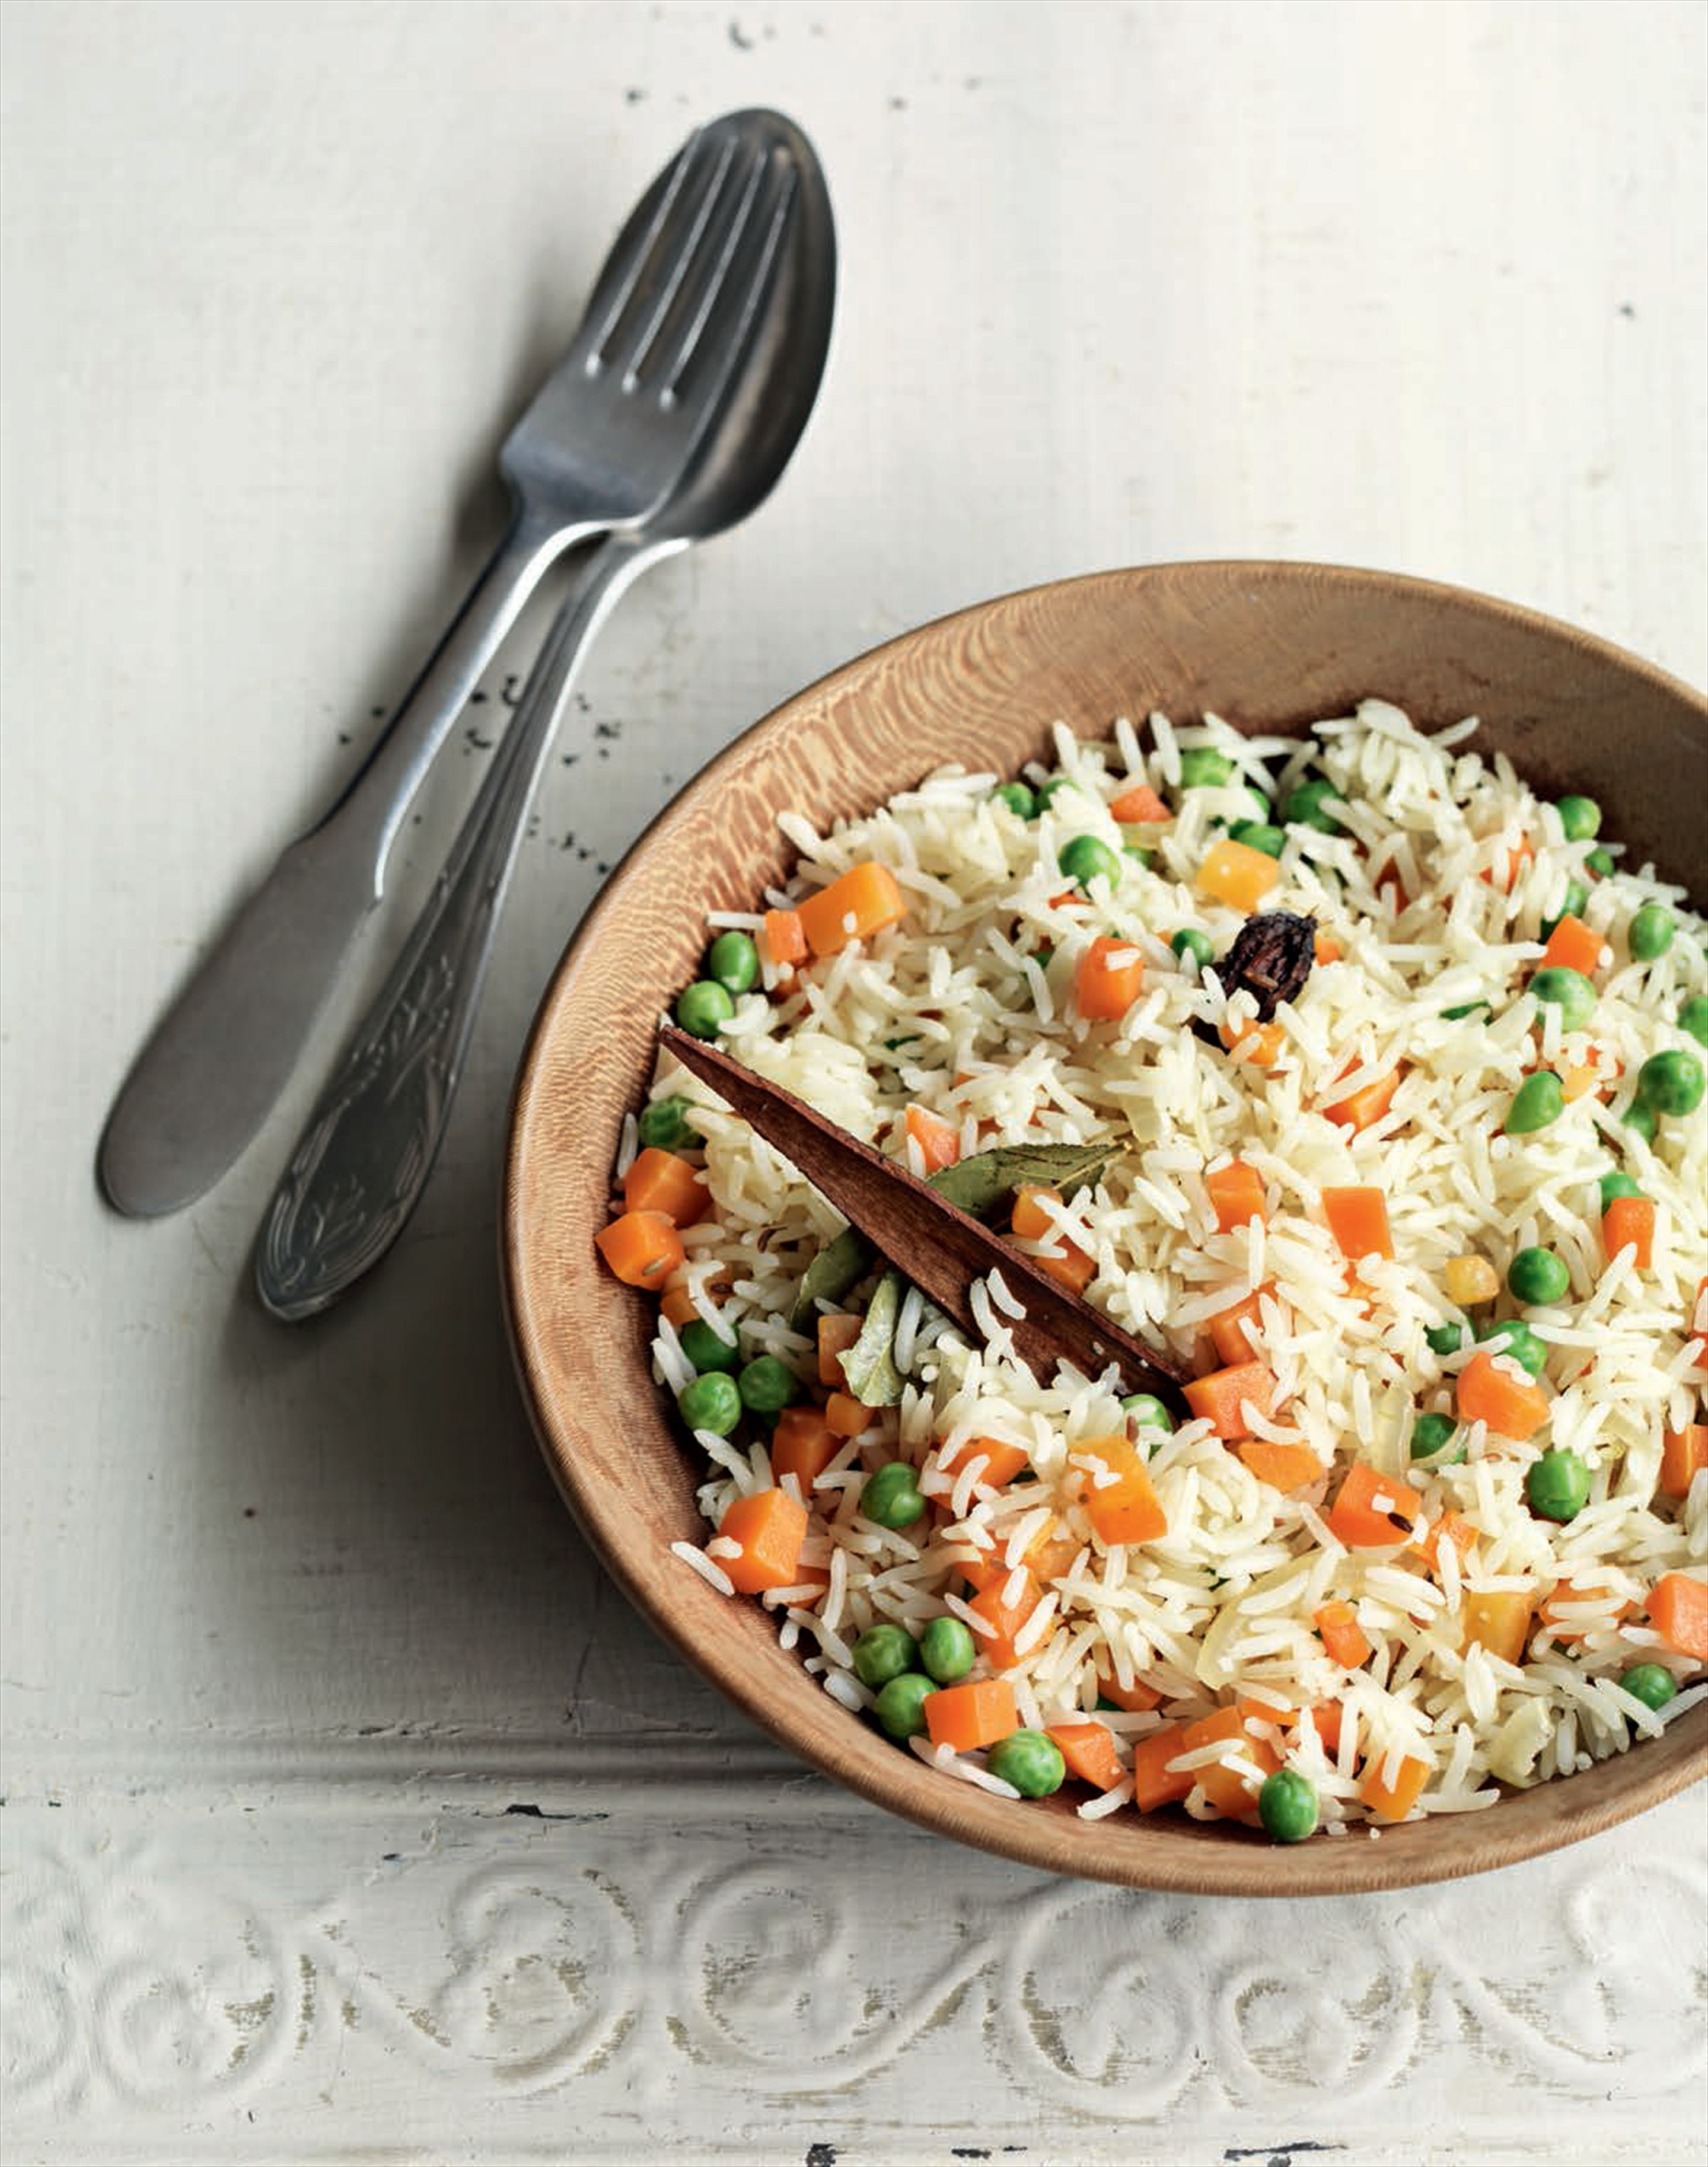 Pea and carrot pilaf